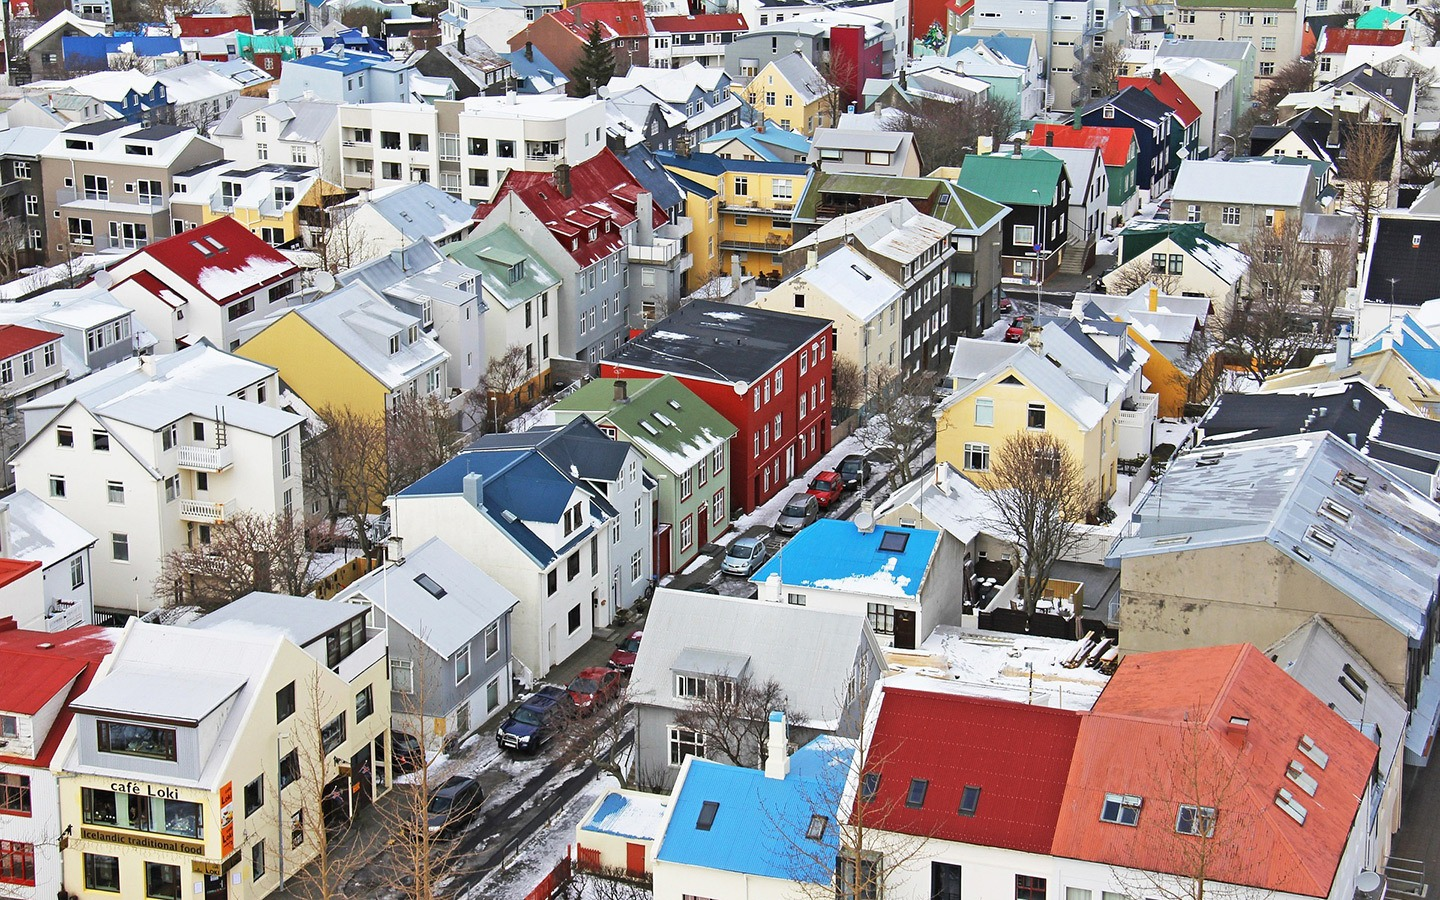 Things to do in Reykjavik in one day